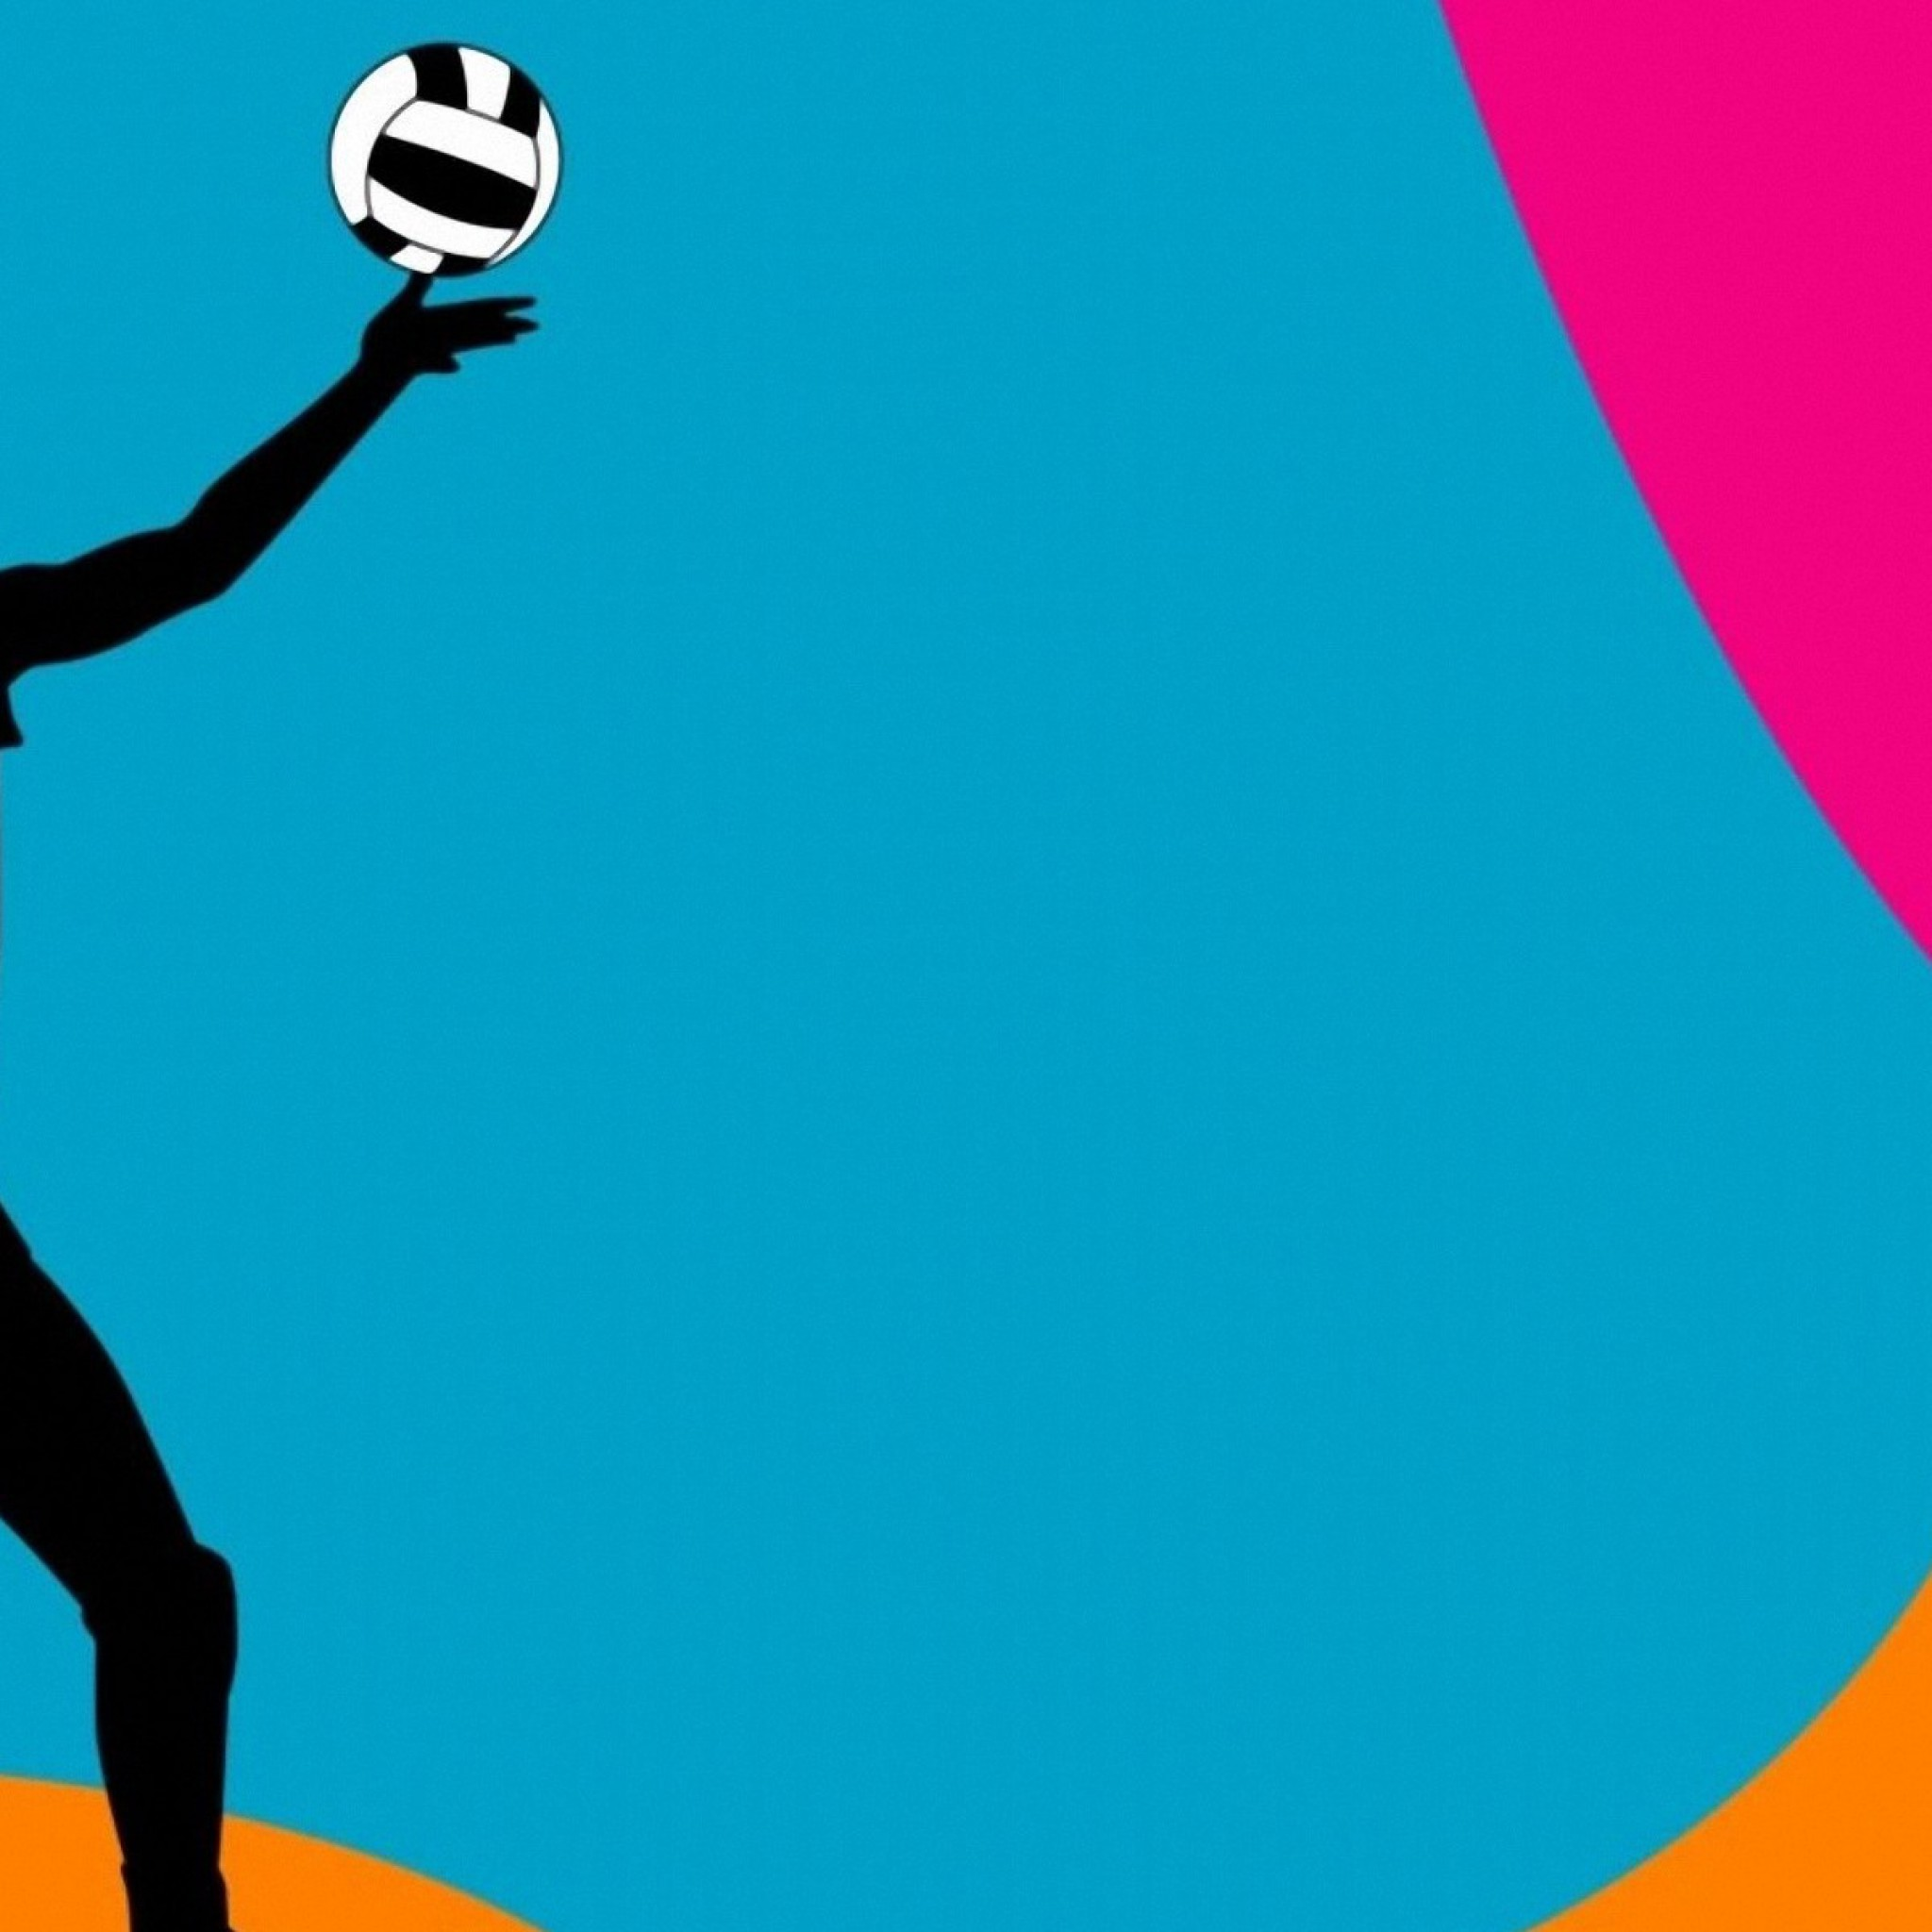 VOLLEYBALL BACKGROUNDS image galleries   imageKBcom 2048x2048